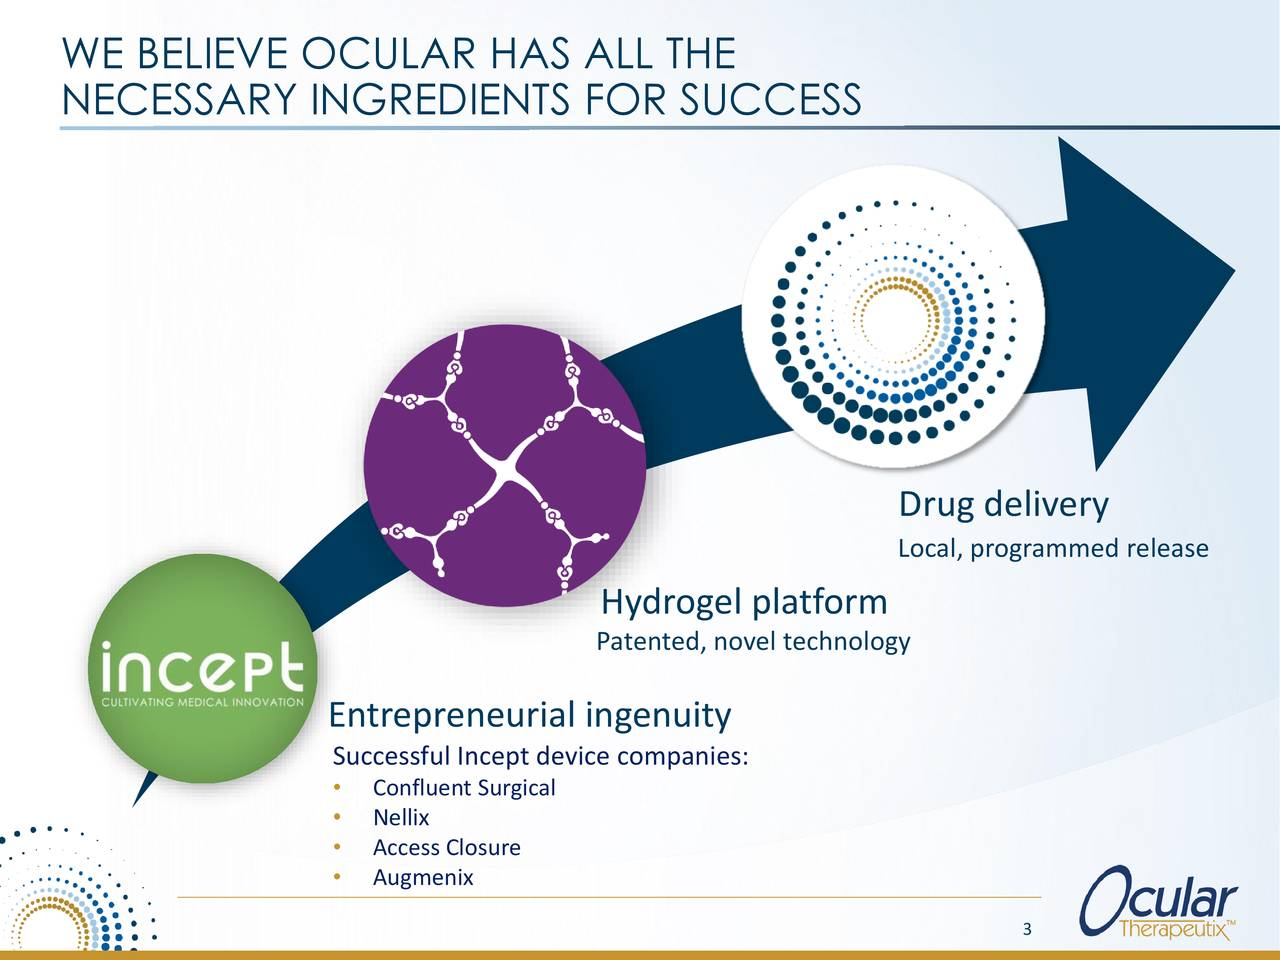 NECESSARY INGREDIENTS FOR SUCCESS Drug delivery Local, programmed release Hydrogel platform Patented, novel technology Entrepreneurial ingenuity Successful Incept device companies: • Confluent Surgical • Nellix • Access Closure • Augmenix 3